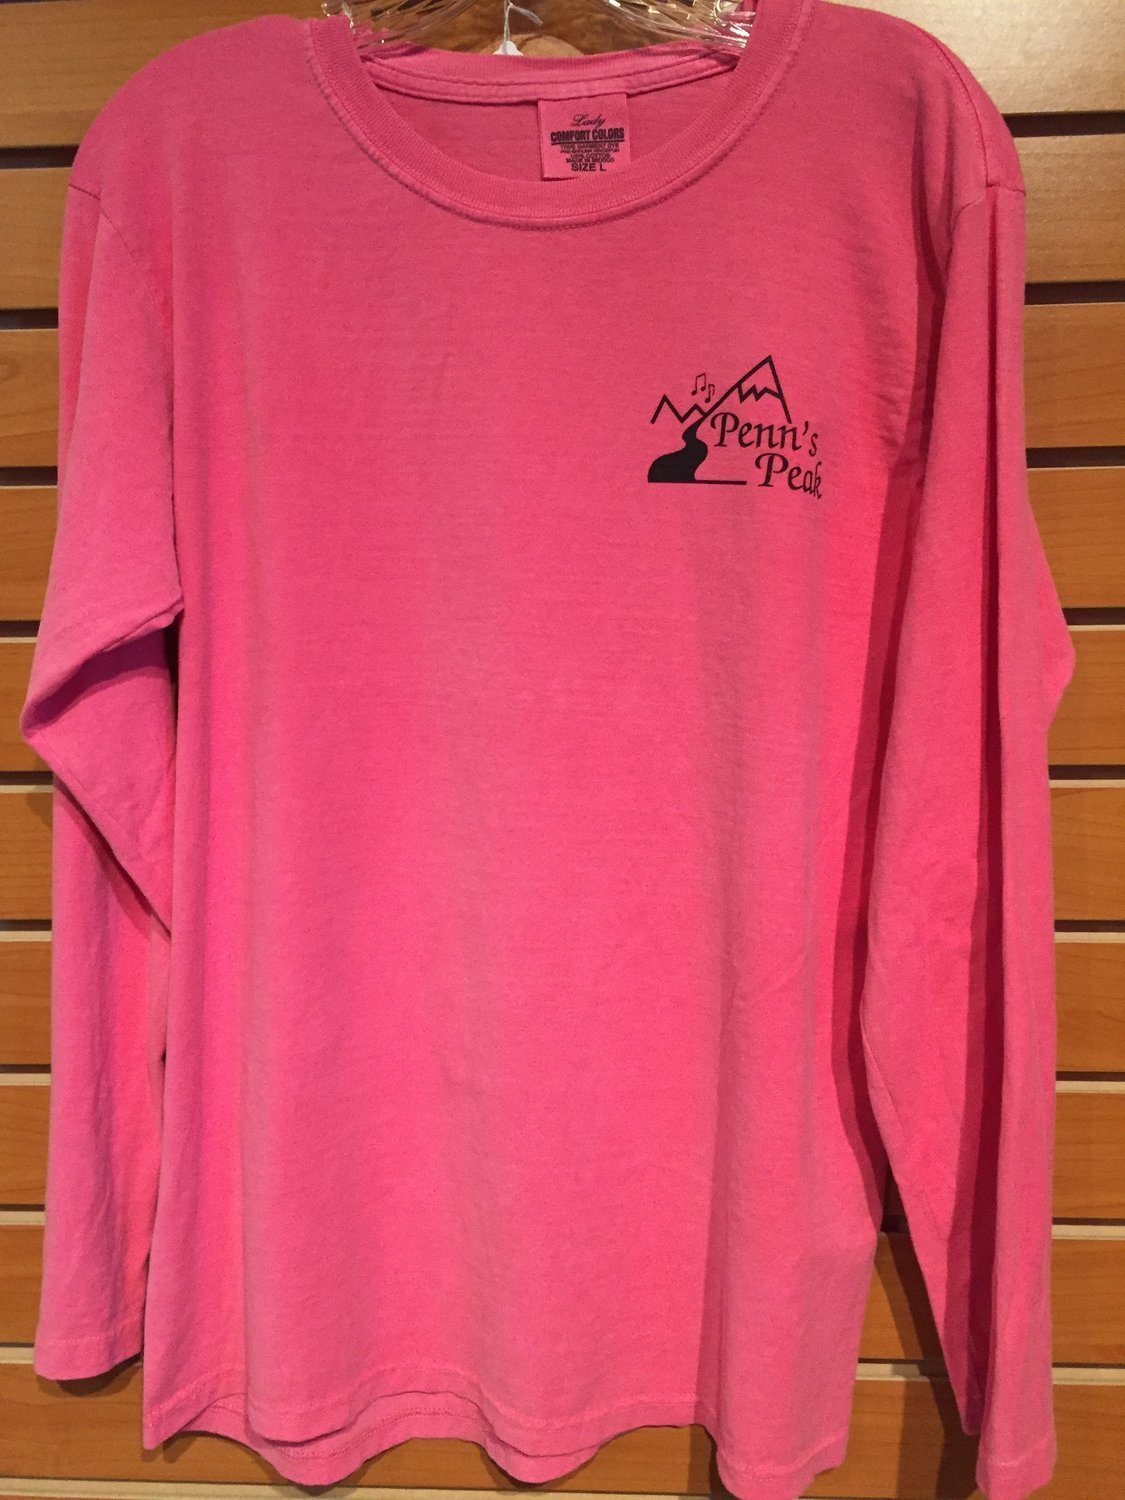 Penn's Peak Lady's Long Sleeve T-shirt